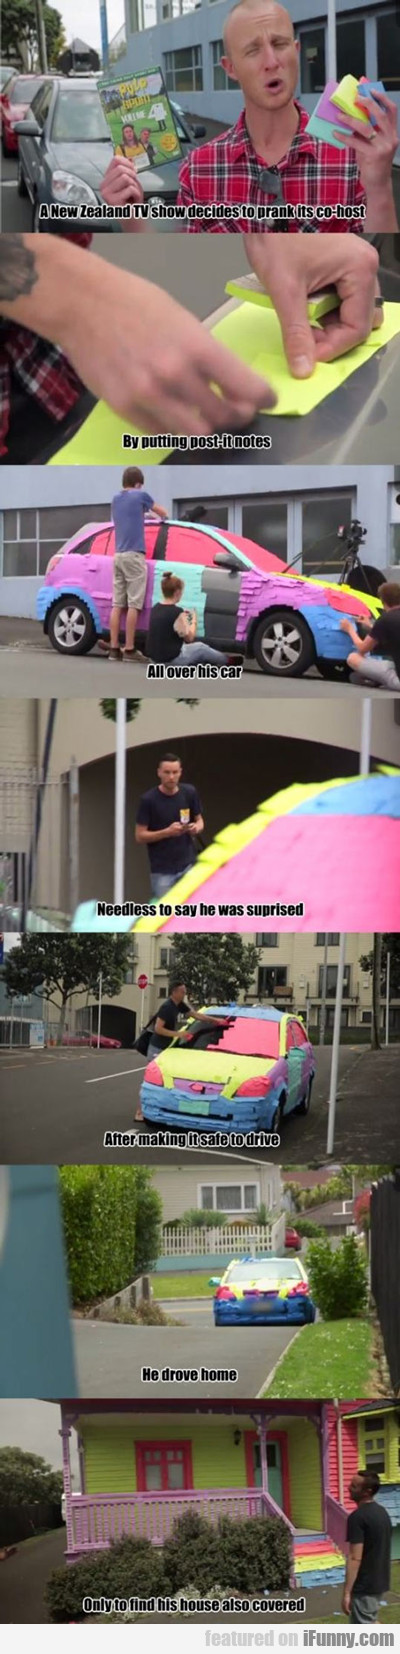 A New Zealand Tv Show Decides To Prank Its...